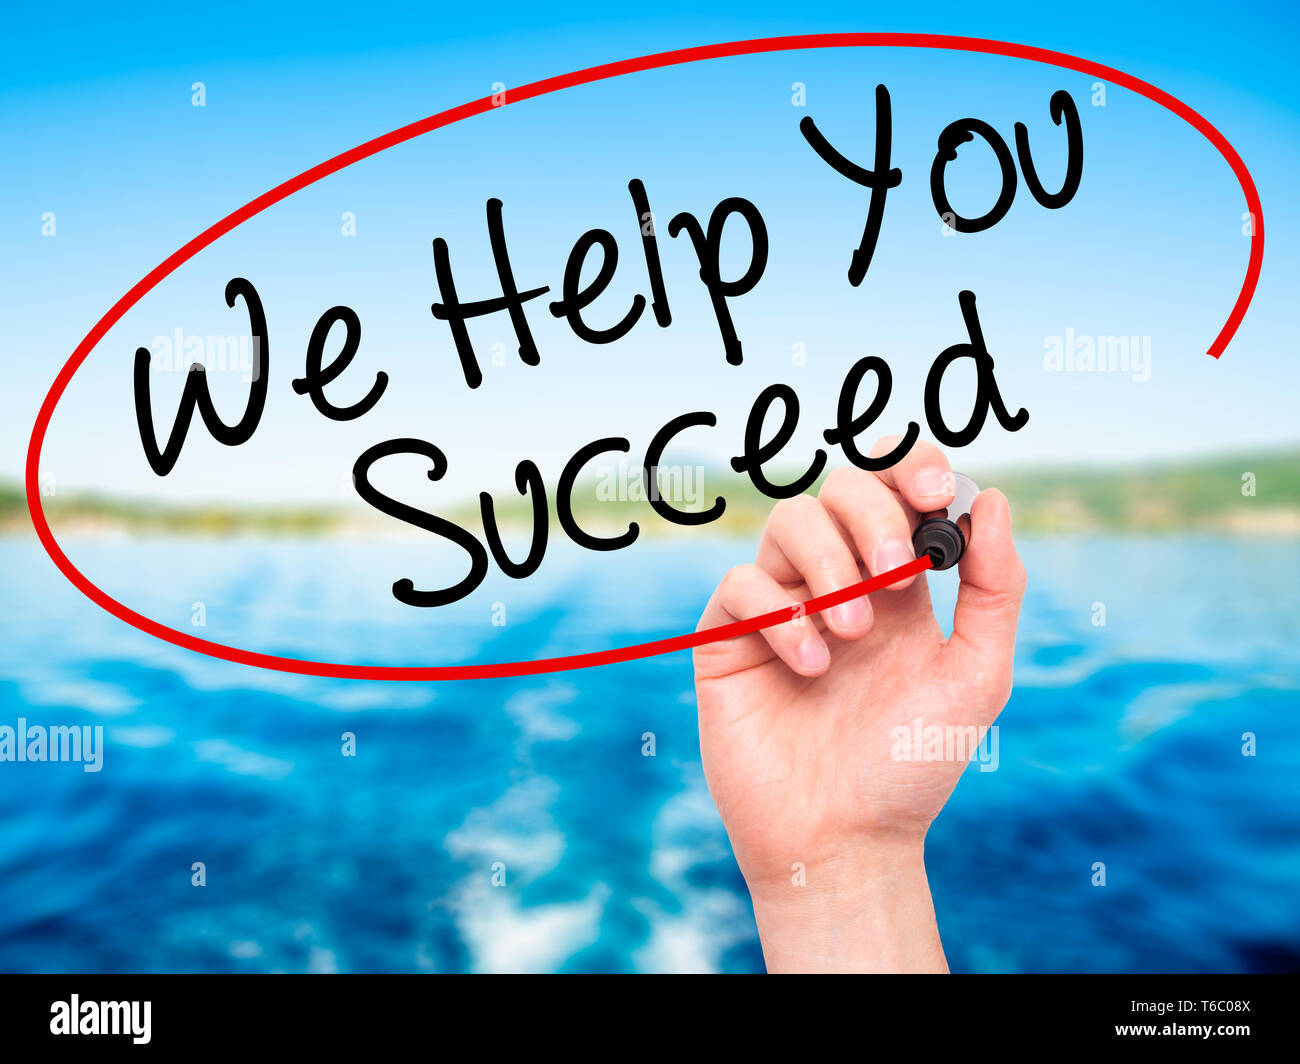 Man Hand writing We Help You Succeed with black marker on visual screen - Stock Image